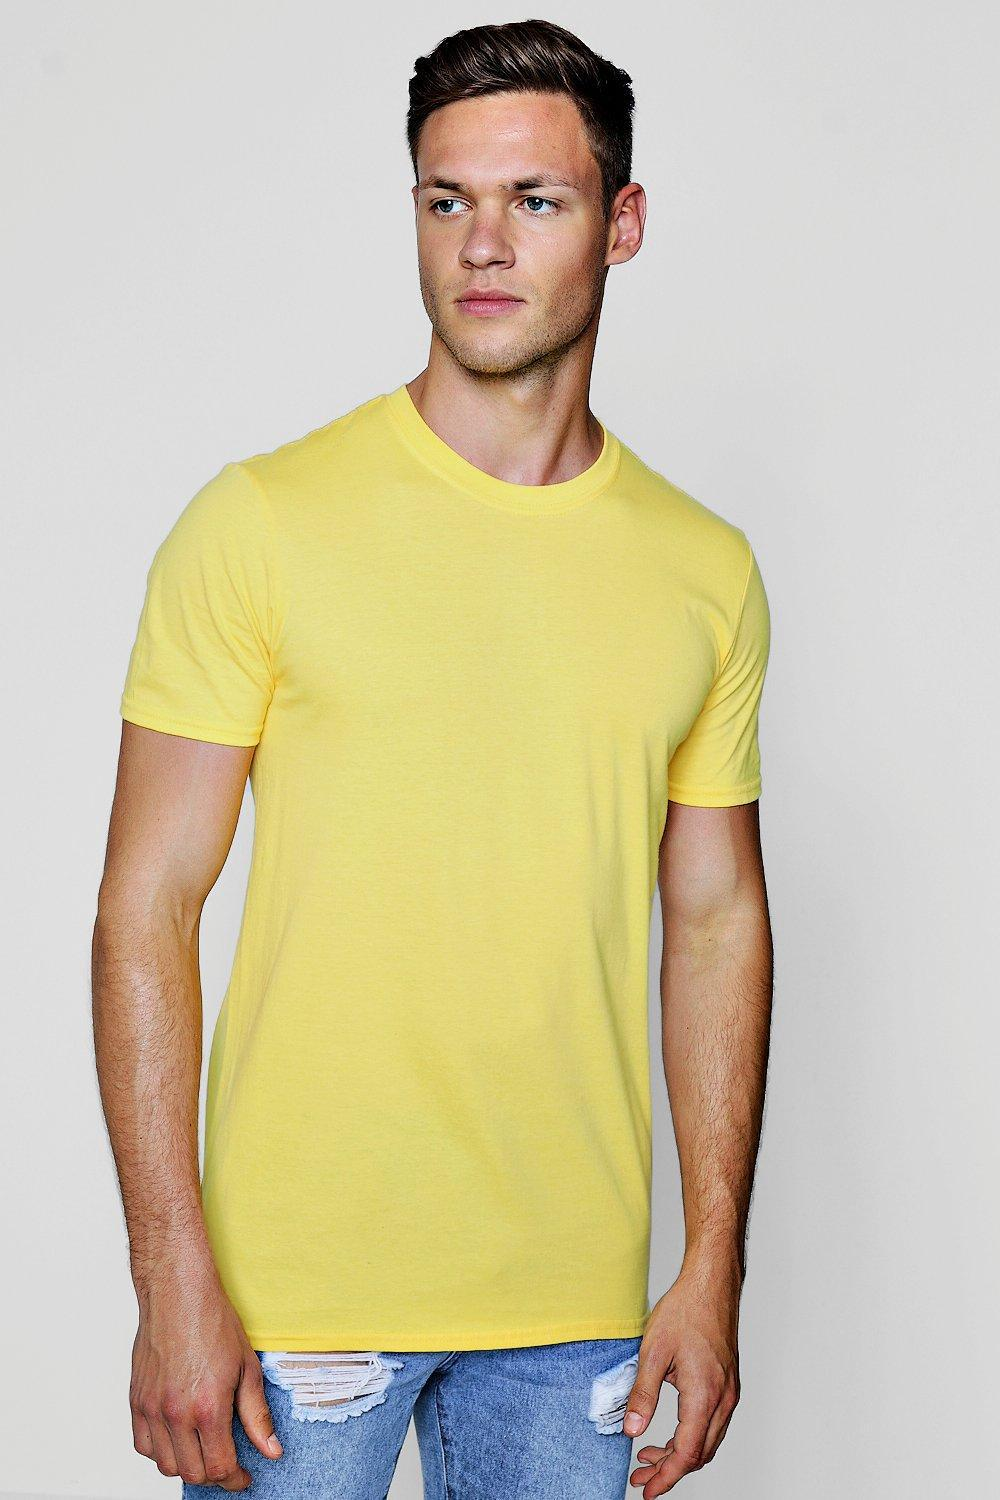 748701e9a7 Lyst - Boohoo Good Vibes Printed T-shirt in Yellow for Men